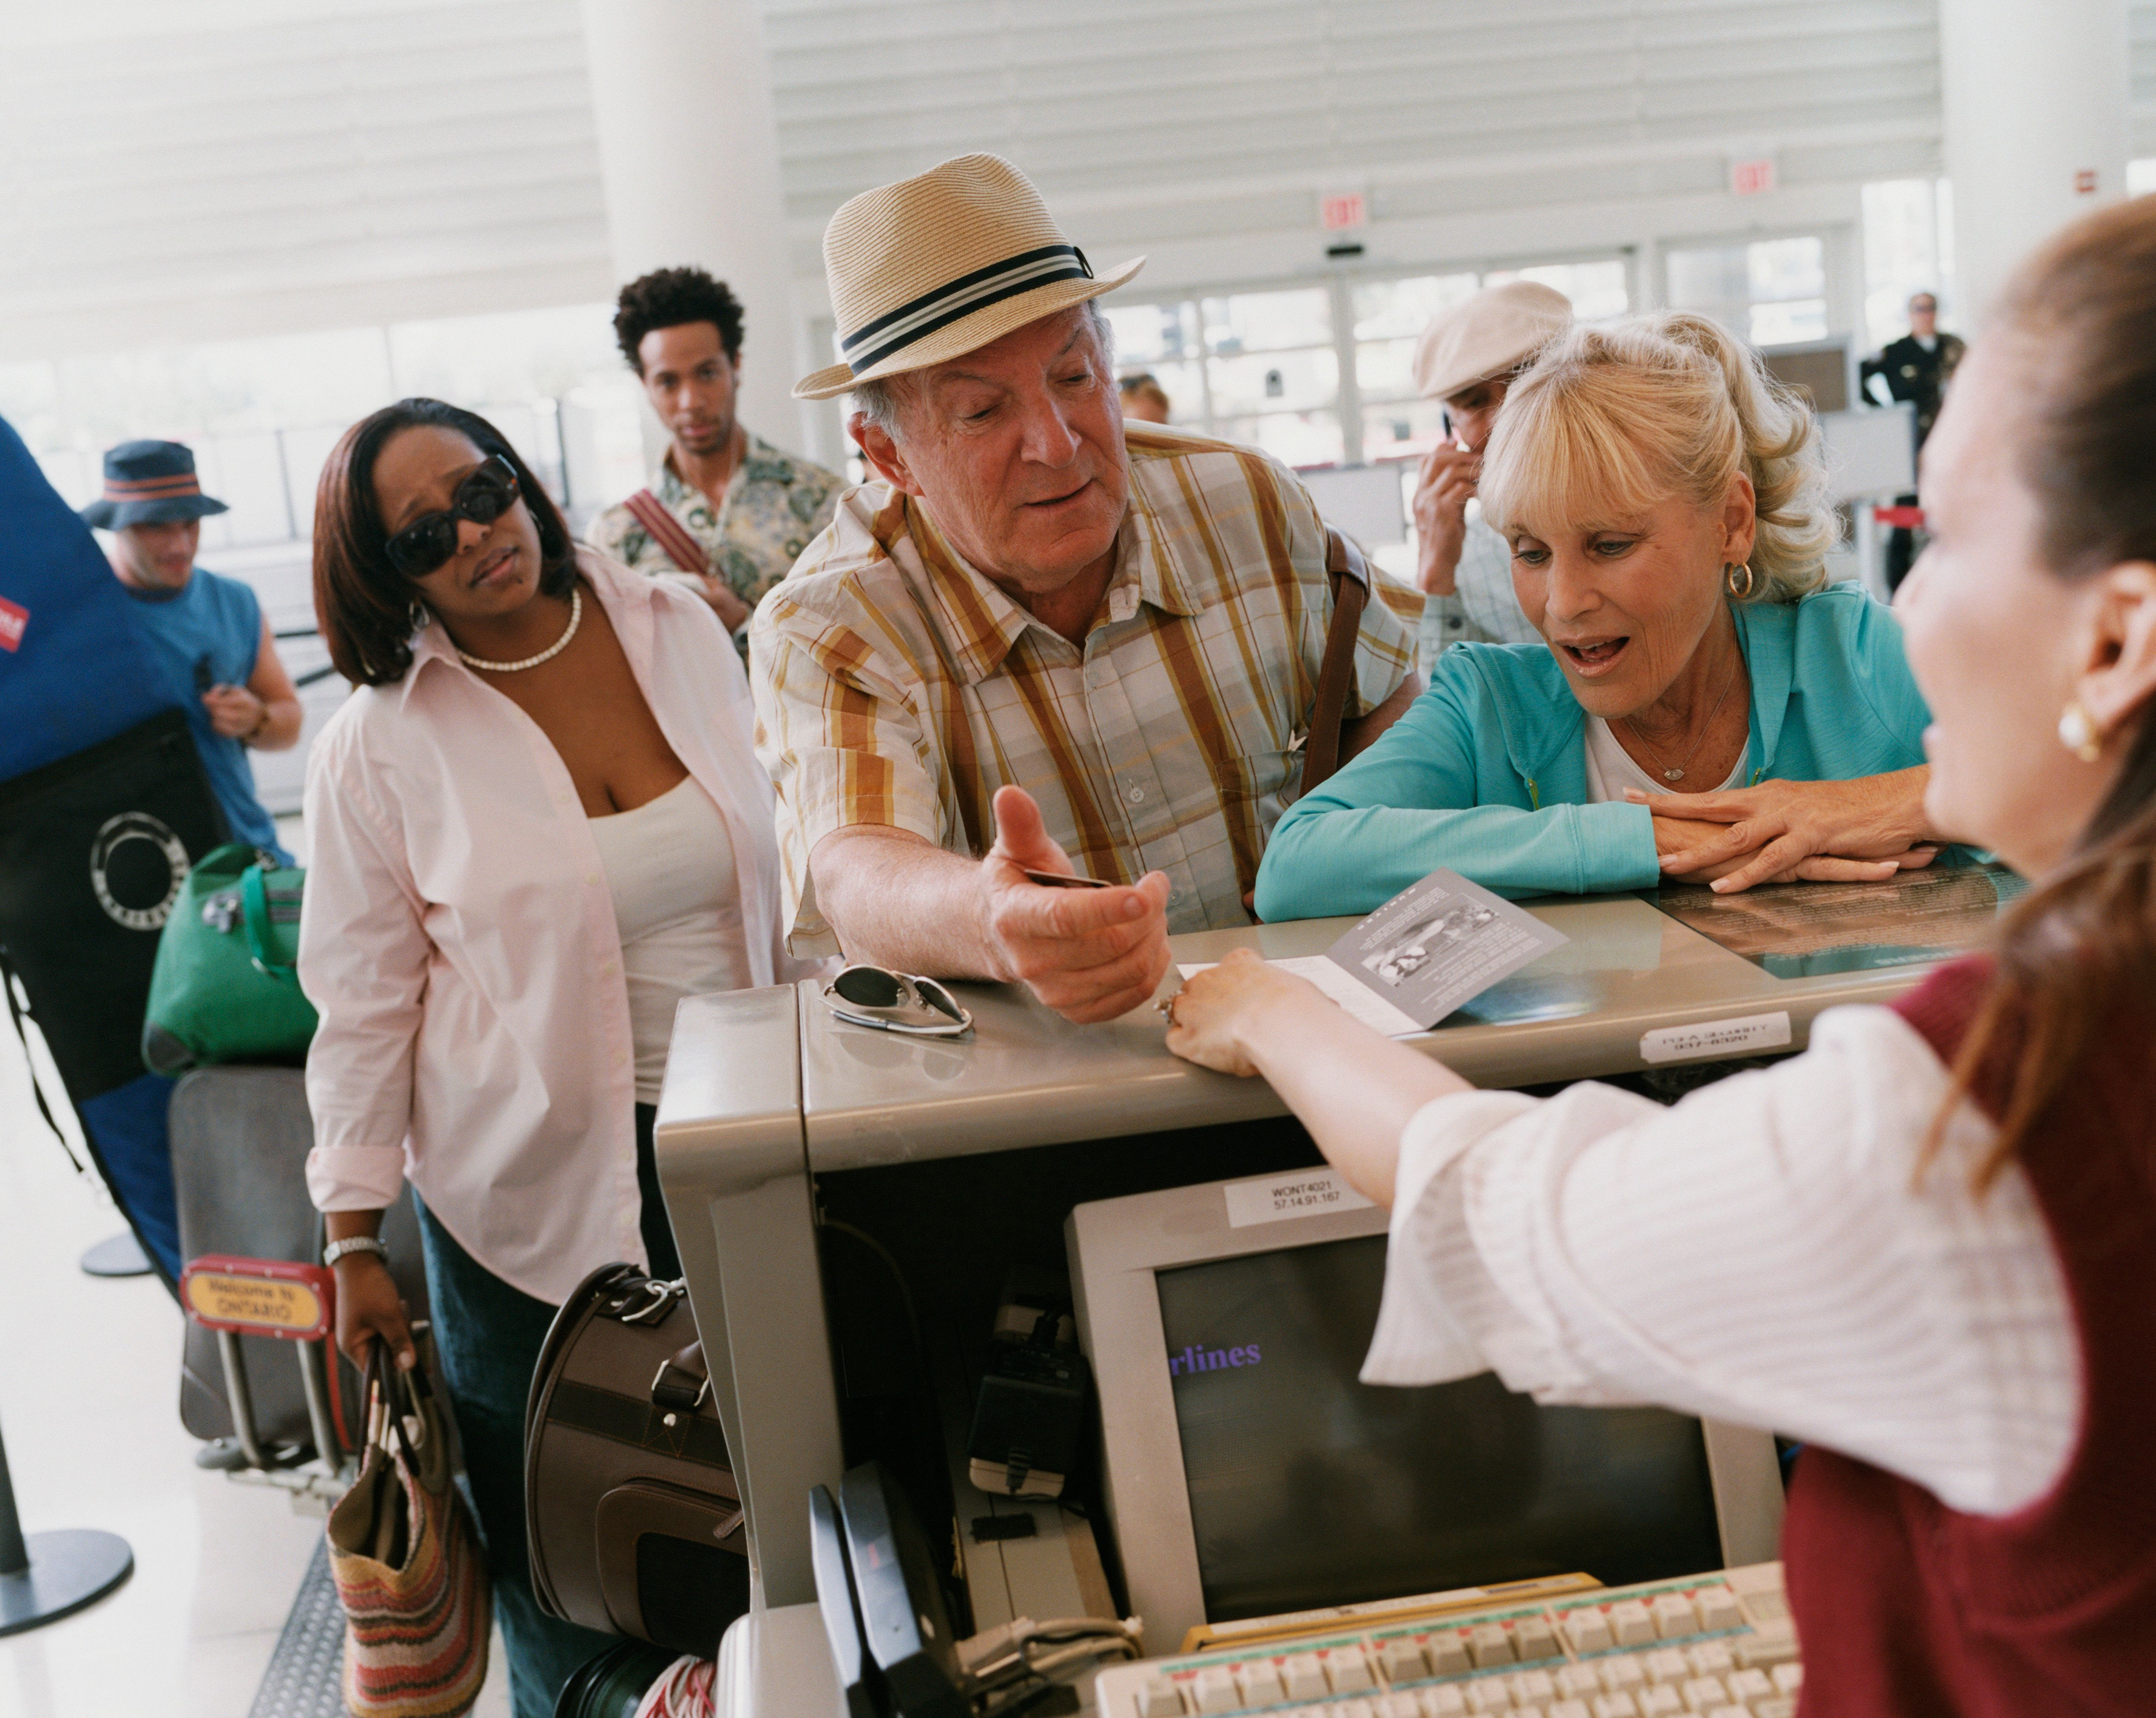 SNAPPED: Top 10 Annoying Airport Habits Revealed – And They're Not Even The